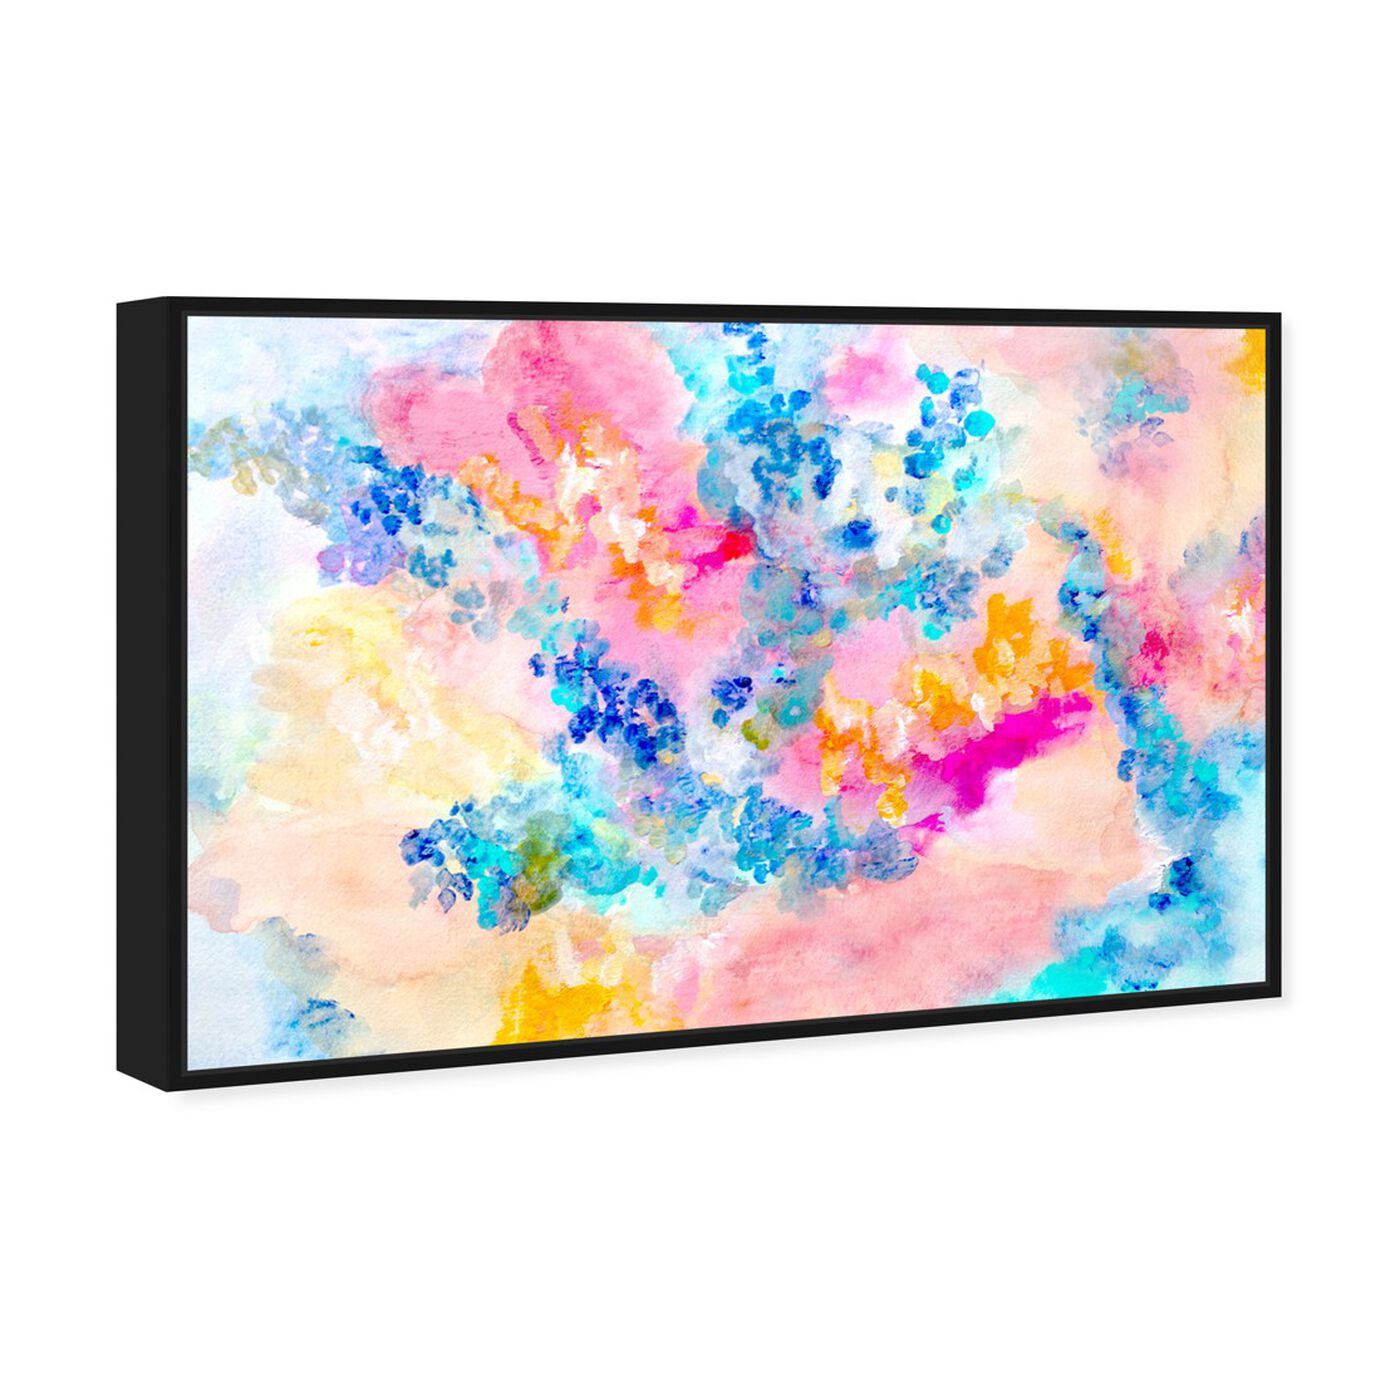 Angled view of Rainbow Tint Florals featuring abstract and watercolor art.